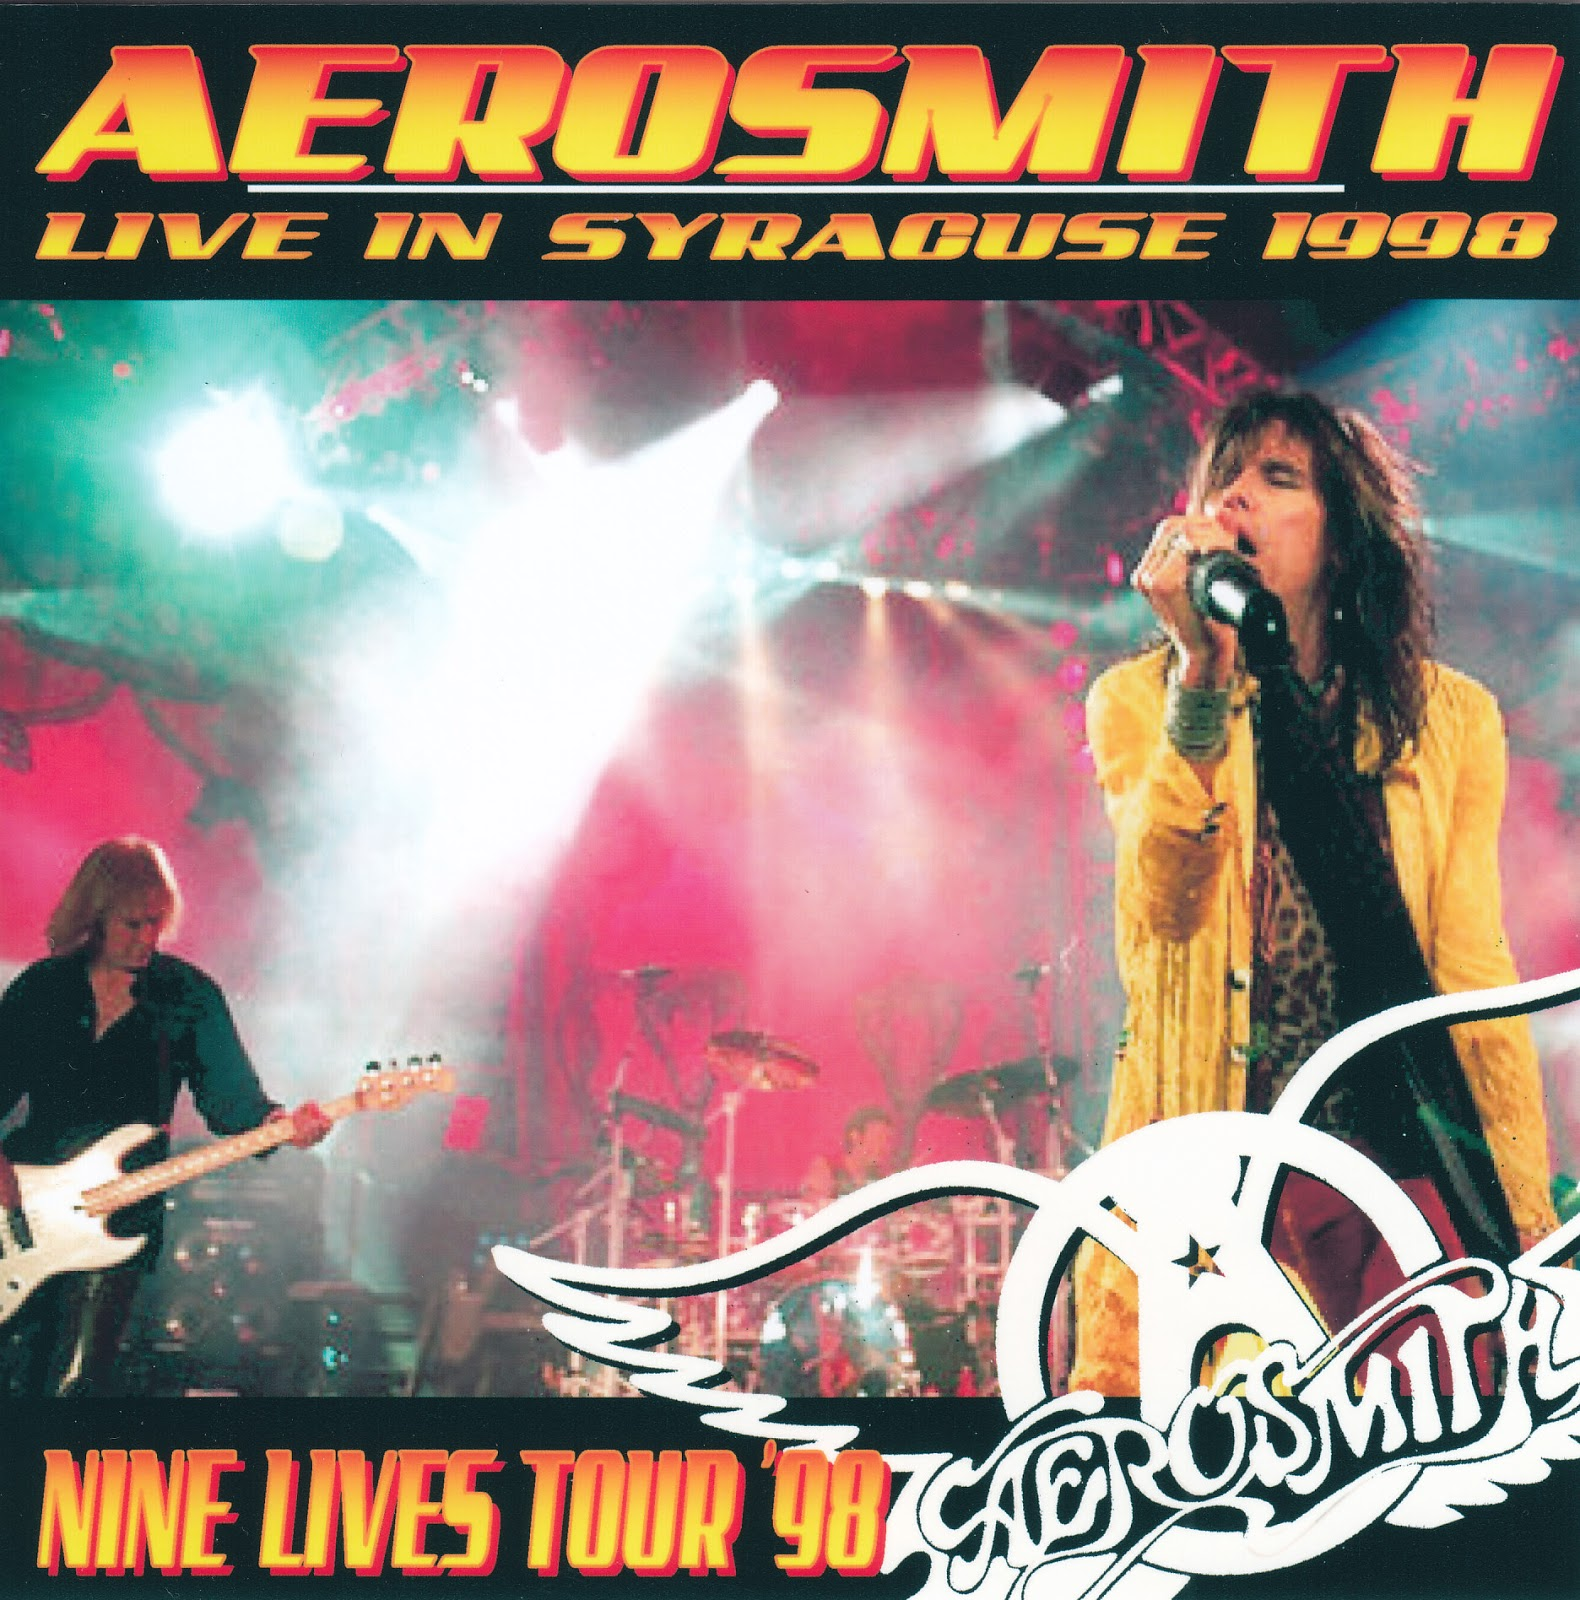 Aerosmith Bootlegs Cover Arts Live In Syracuse 1998